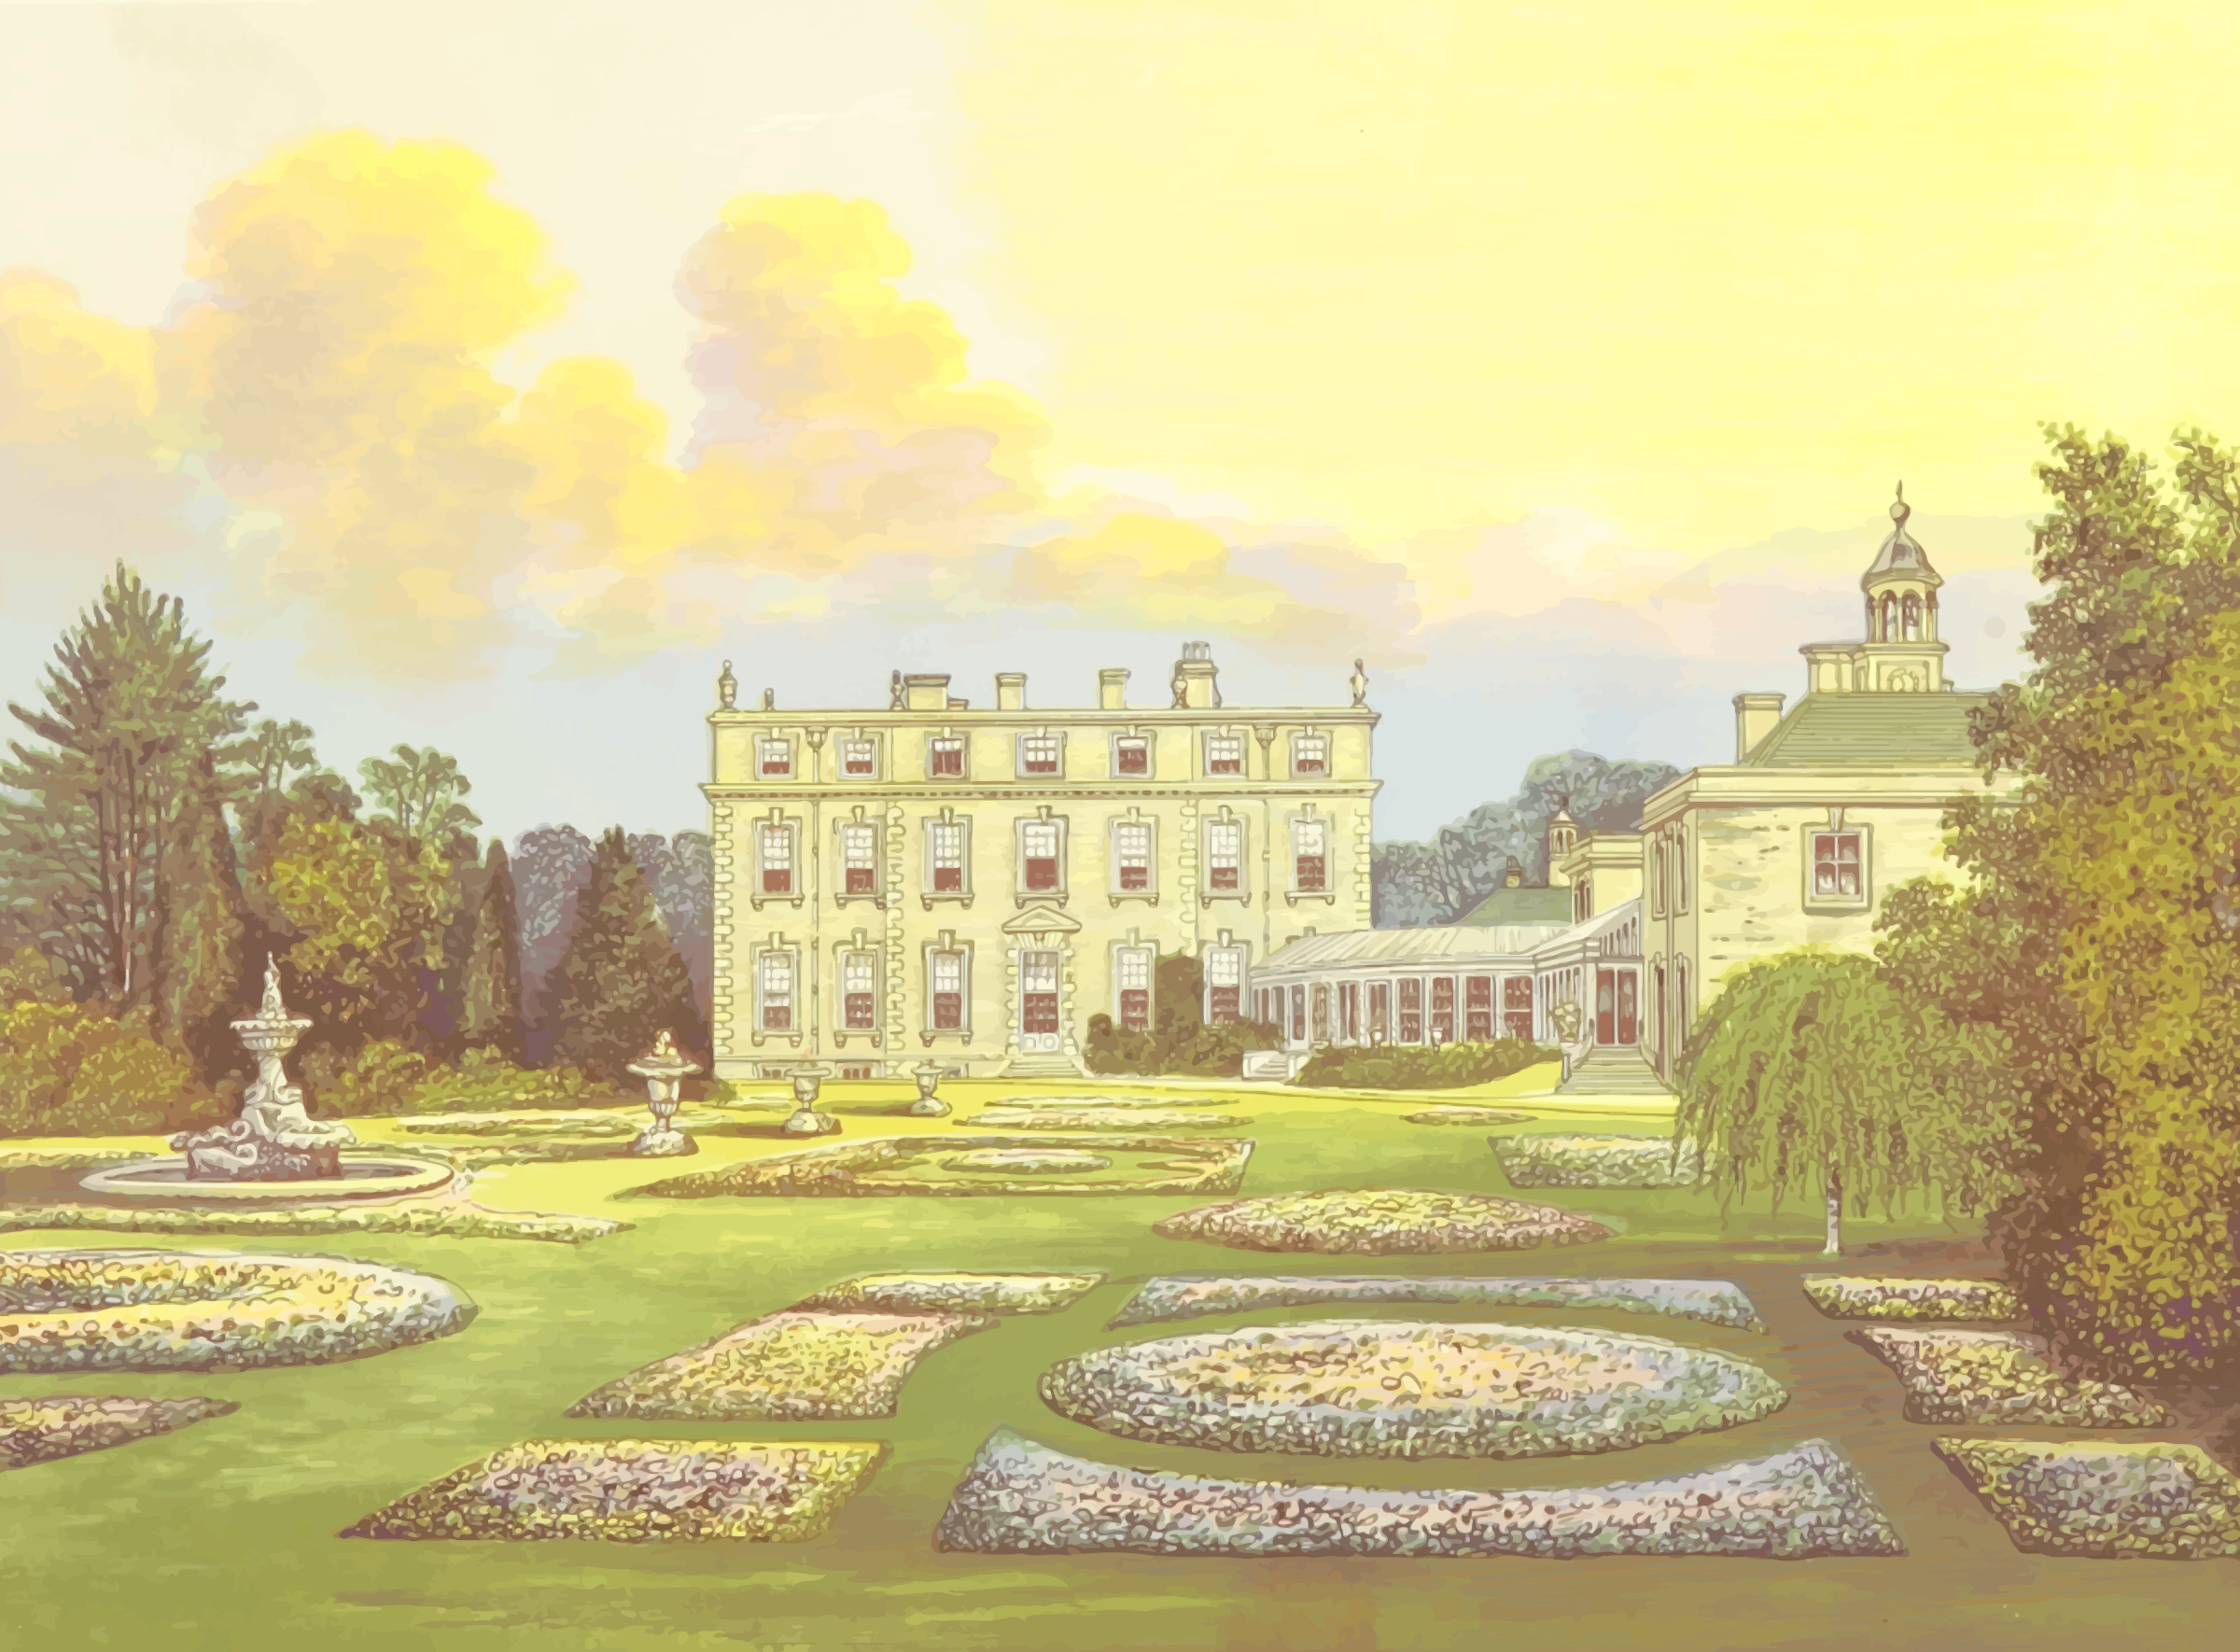 Ditchley Hall by Firkin